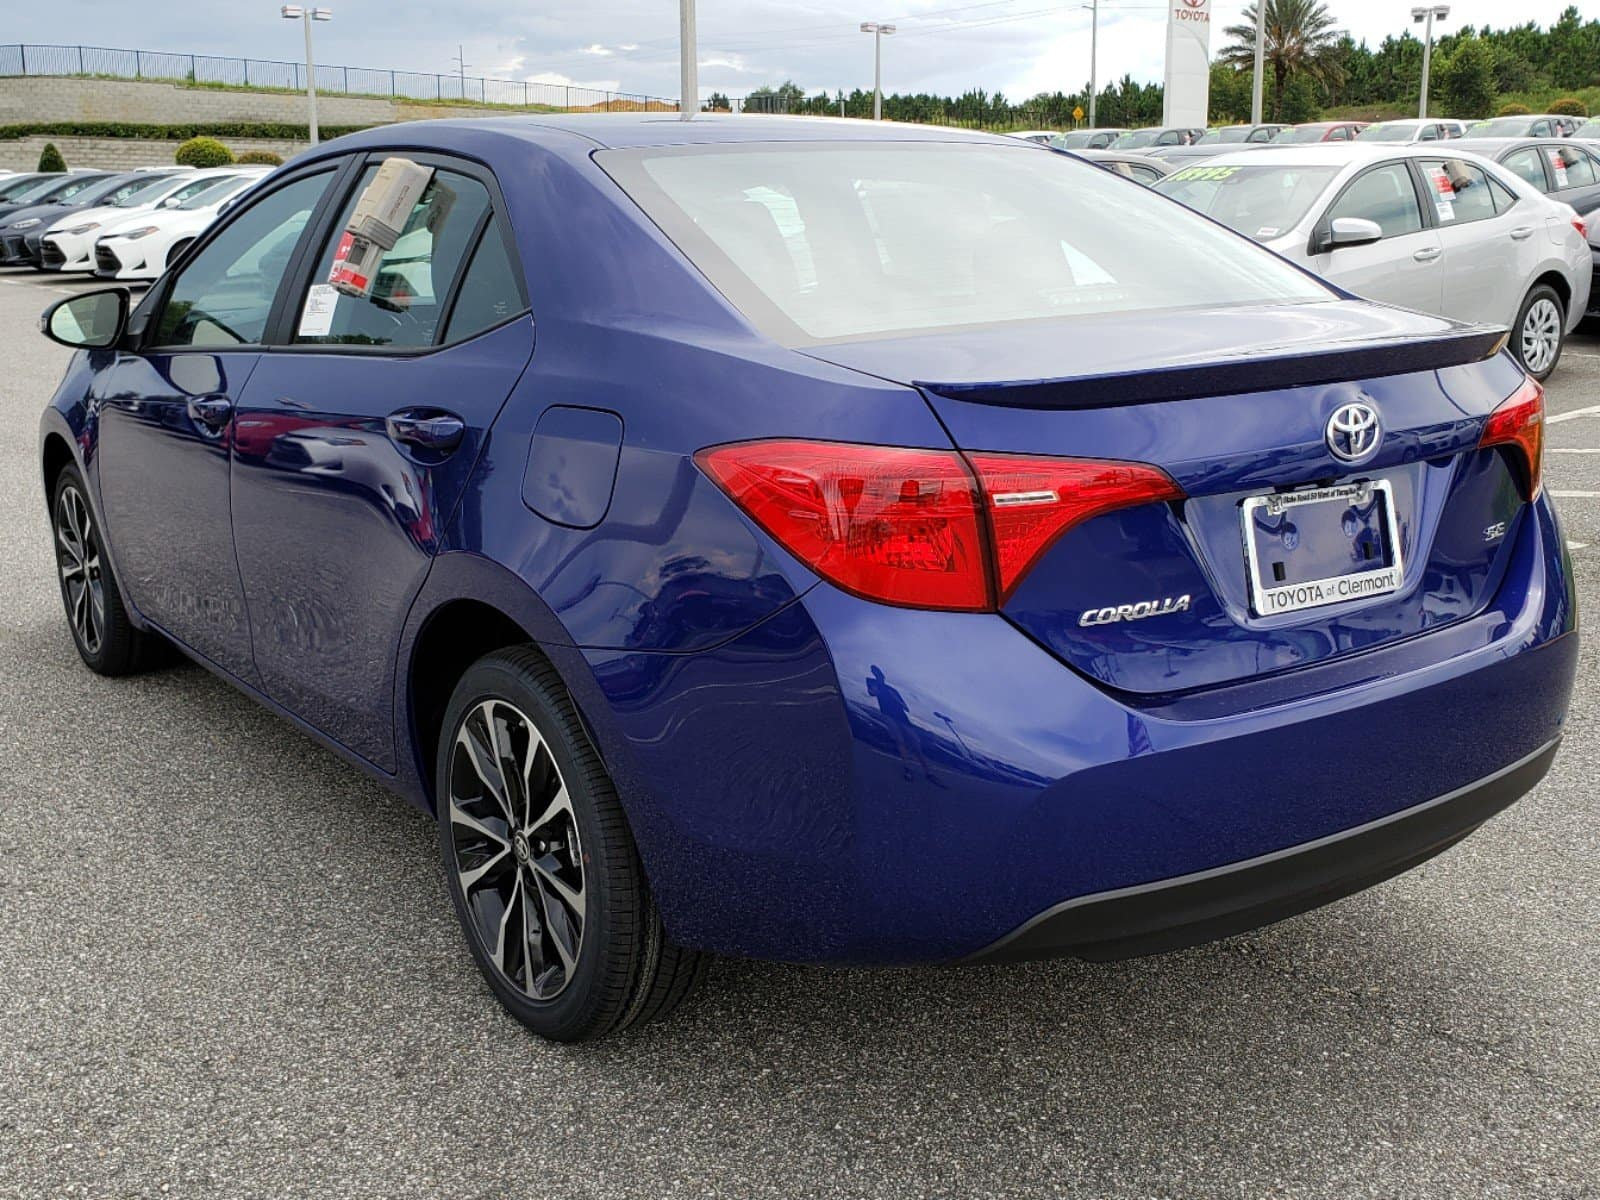 The Clermont Toyota Corolla.